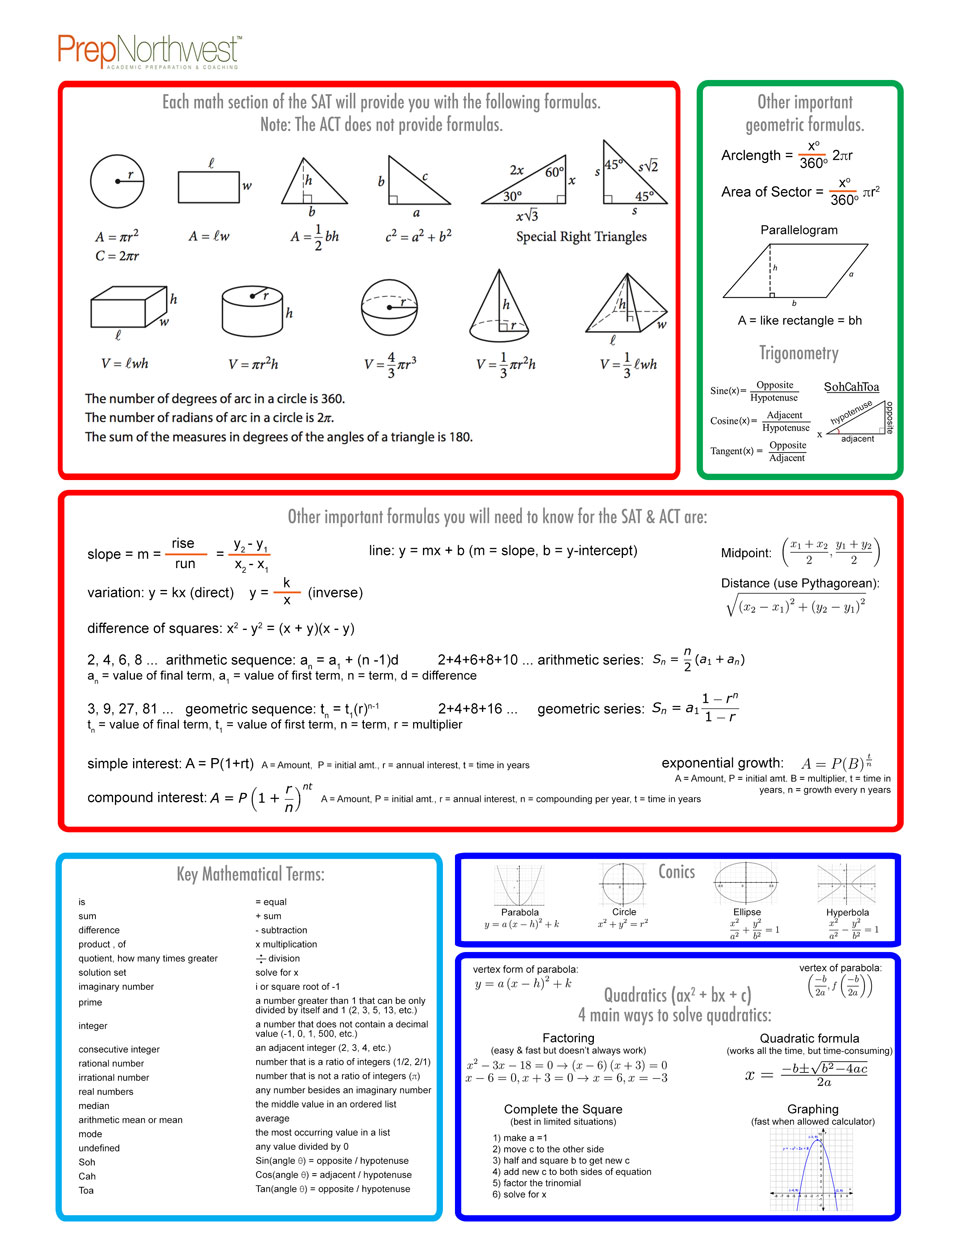 PrepNorthwest – Math Formulas Worksheet